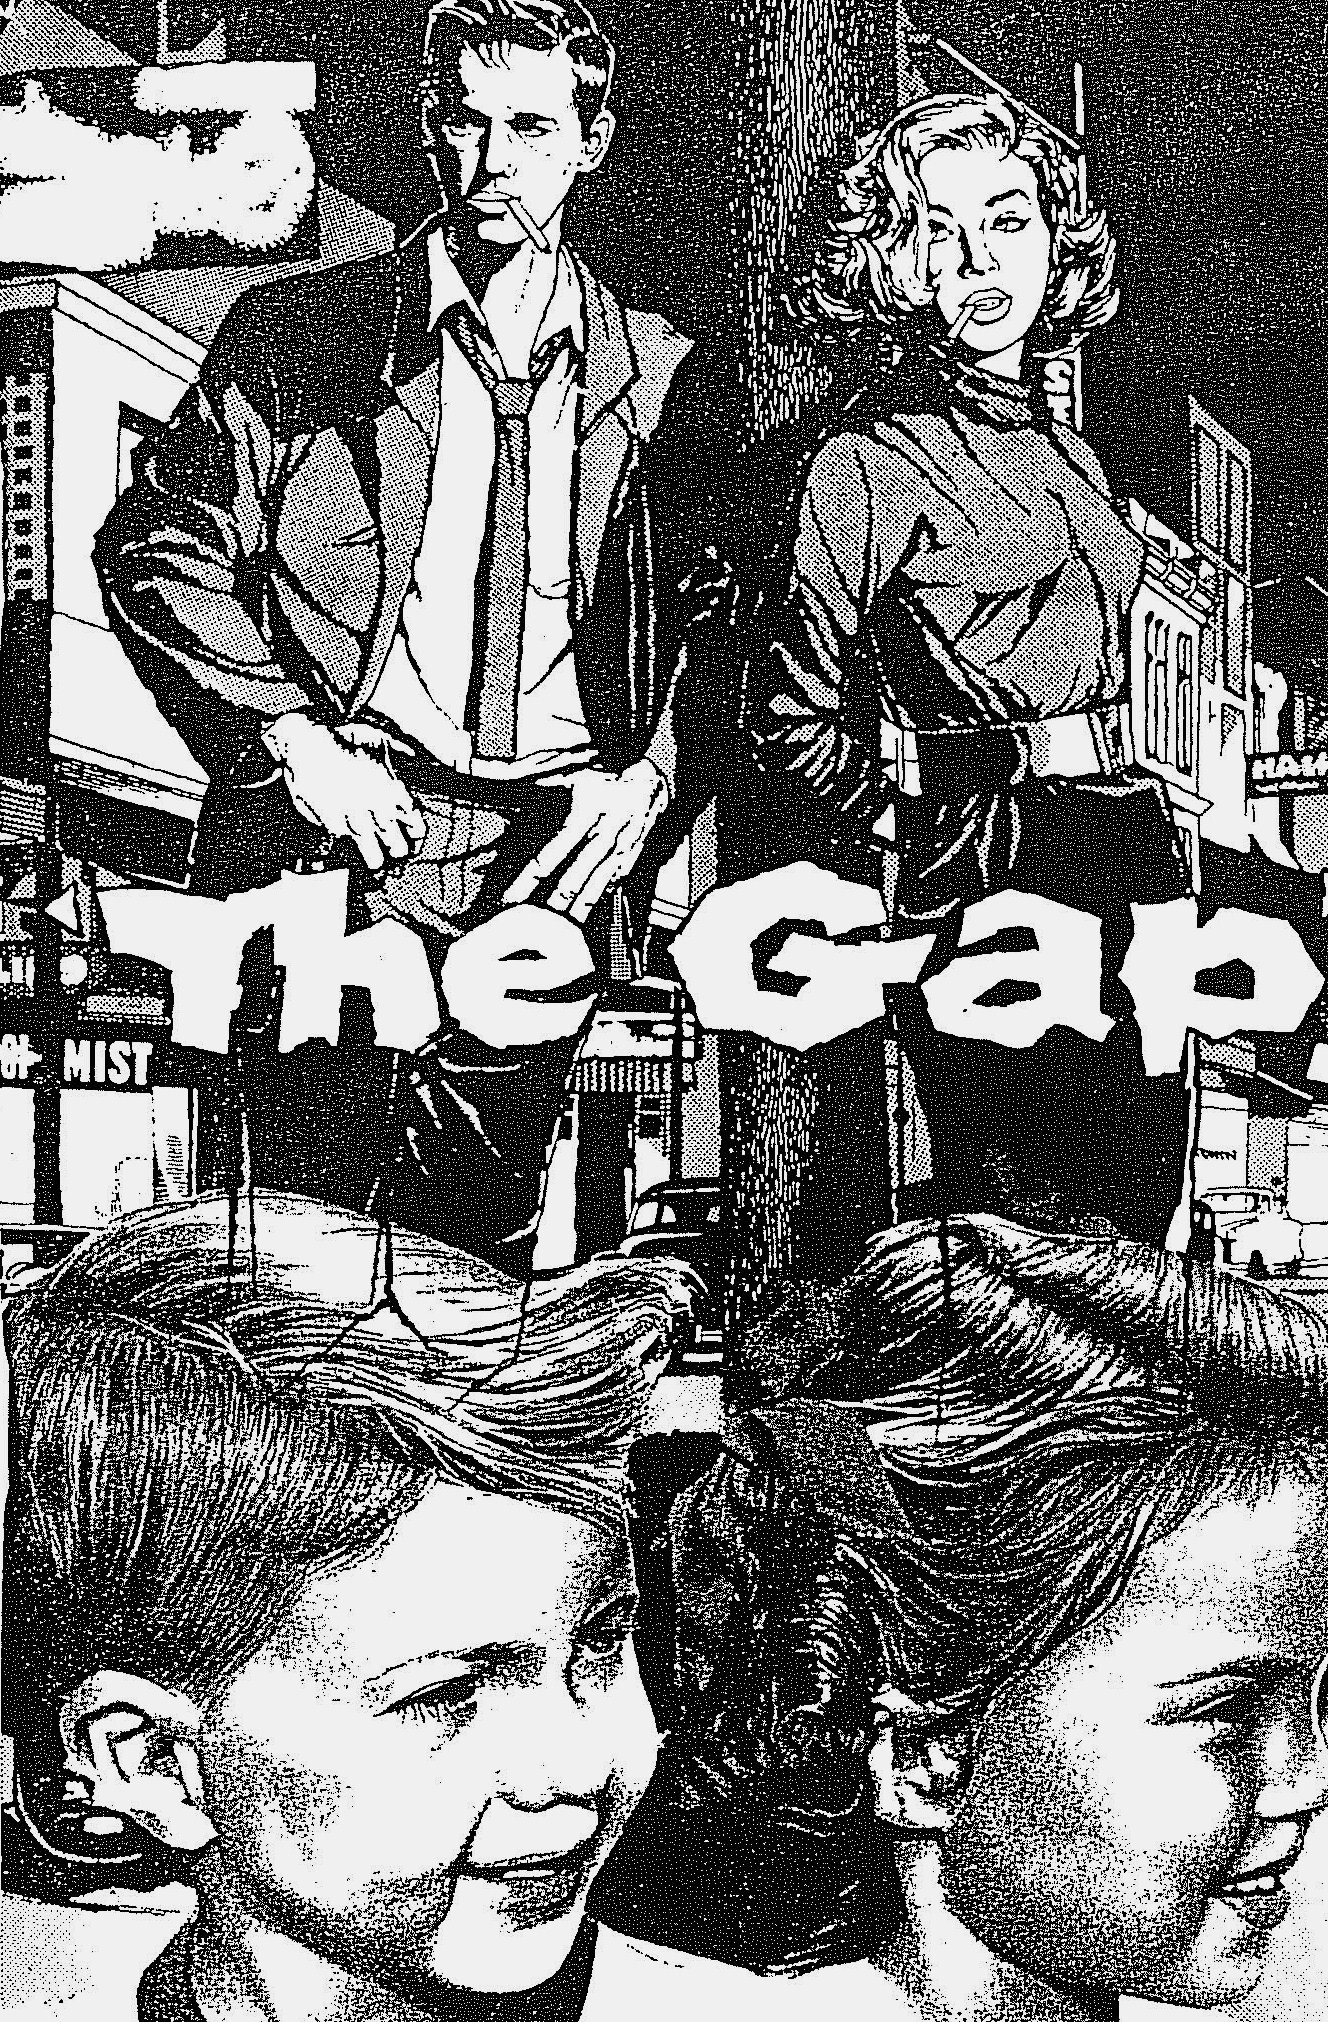 Tame adolescents break out in the 1950s. Bodgies and widgies on the street, escaping the regular adolescence, 1958. Cover art, The Gap, Ainslie Roberts & Adelaide Art Engravers.